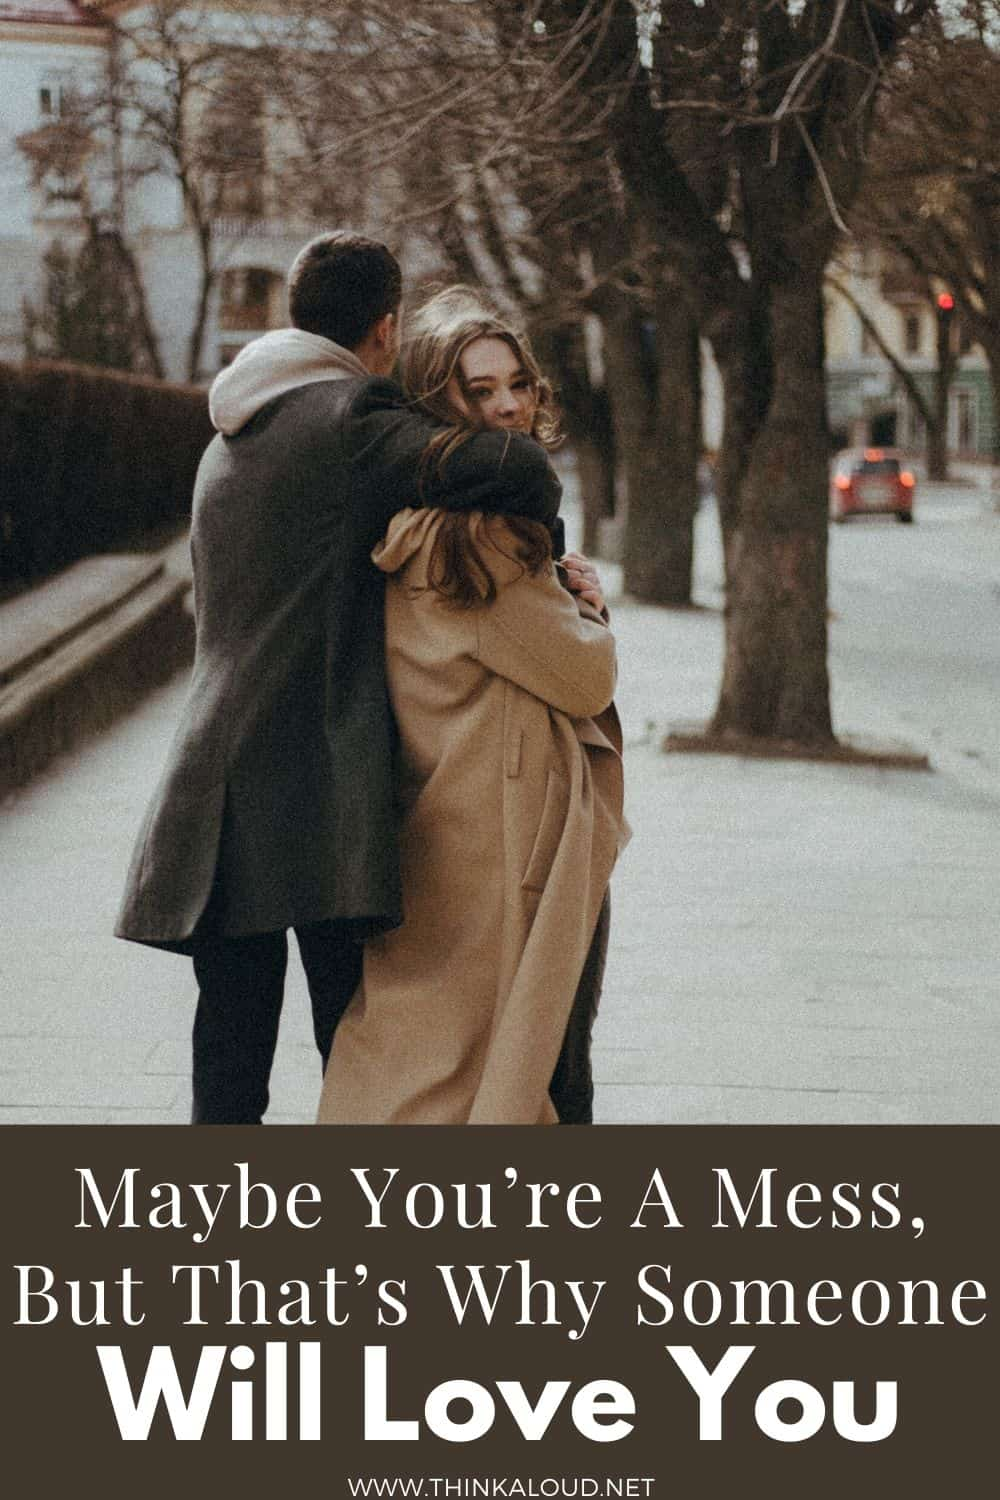 Maybe You're A Mess, But That's Why Someone Will Love You